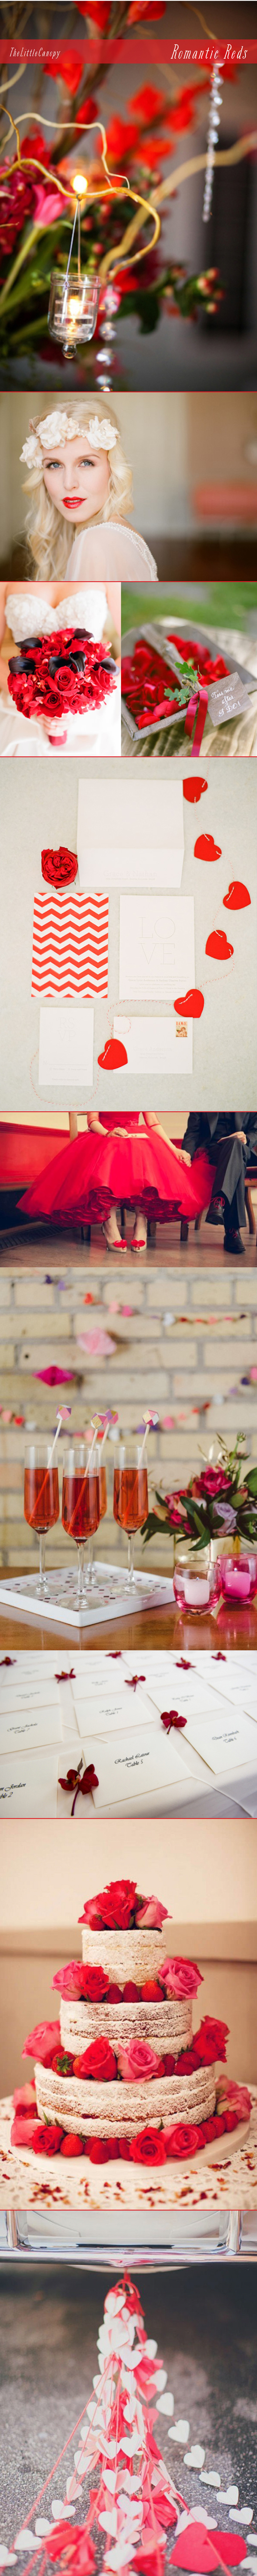 A wedding inspiration board for the color theme romantic reds